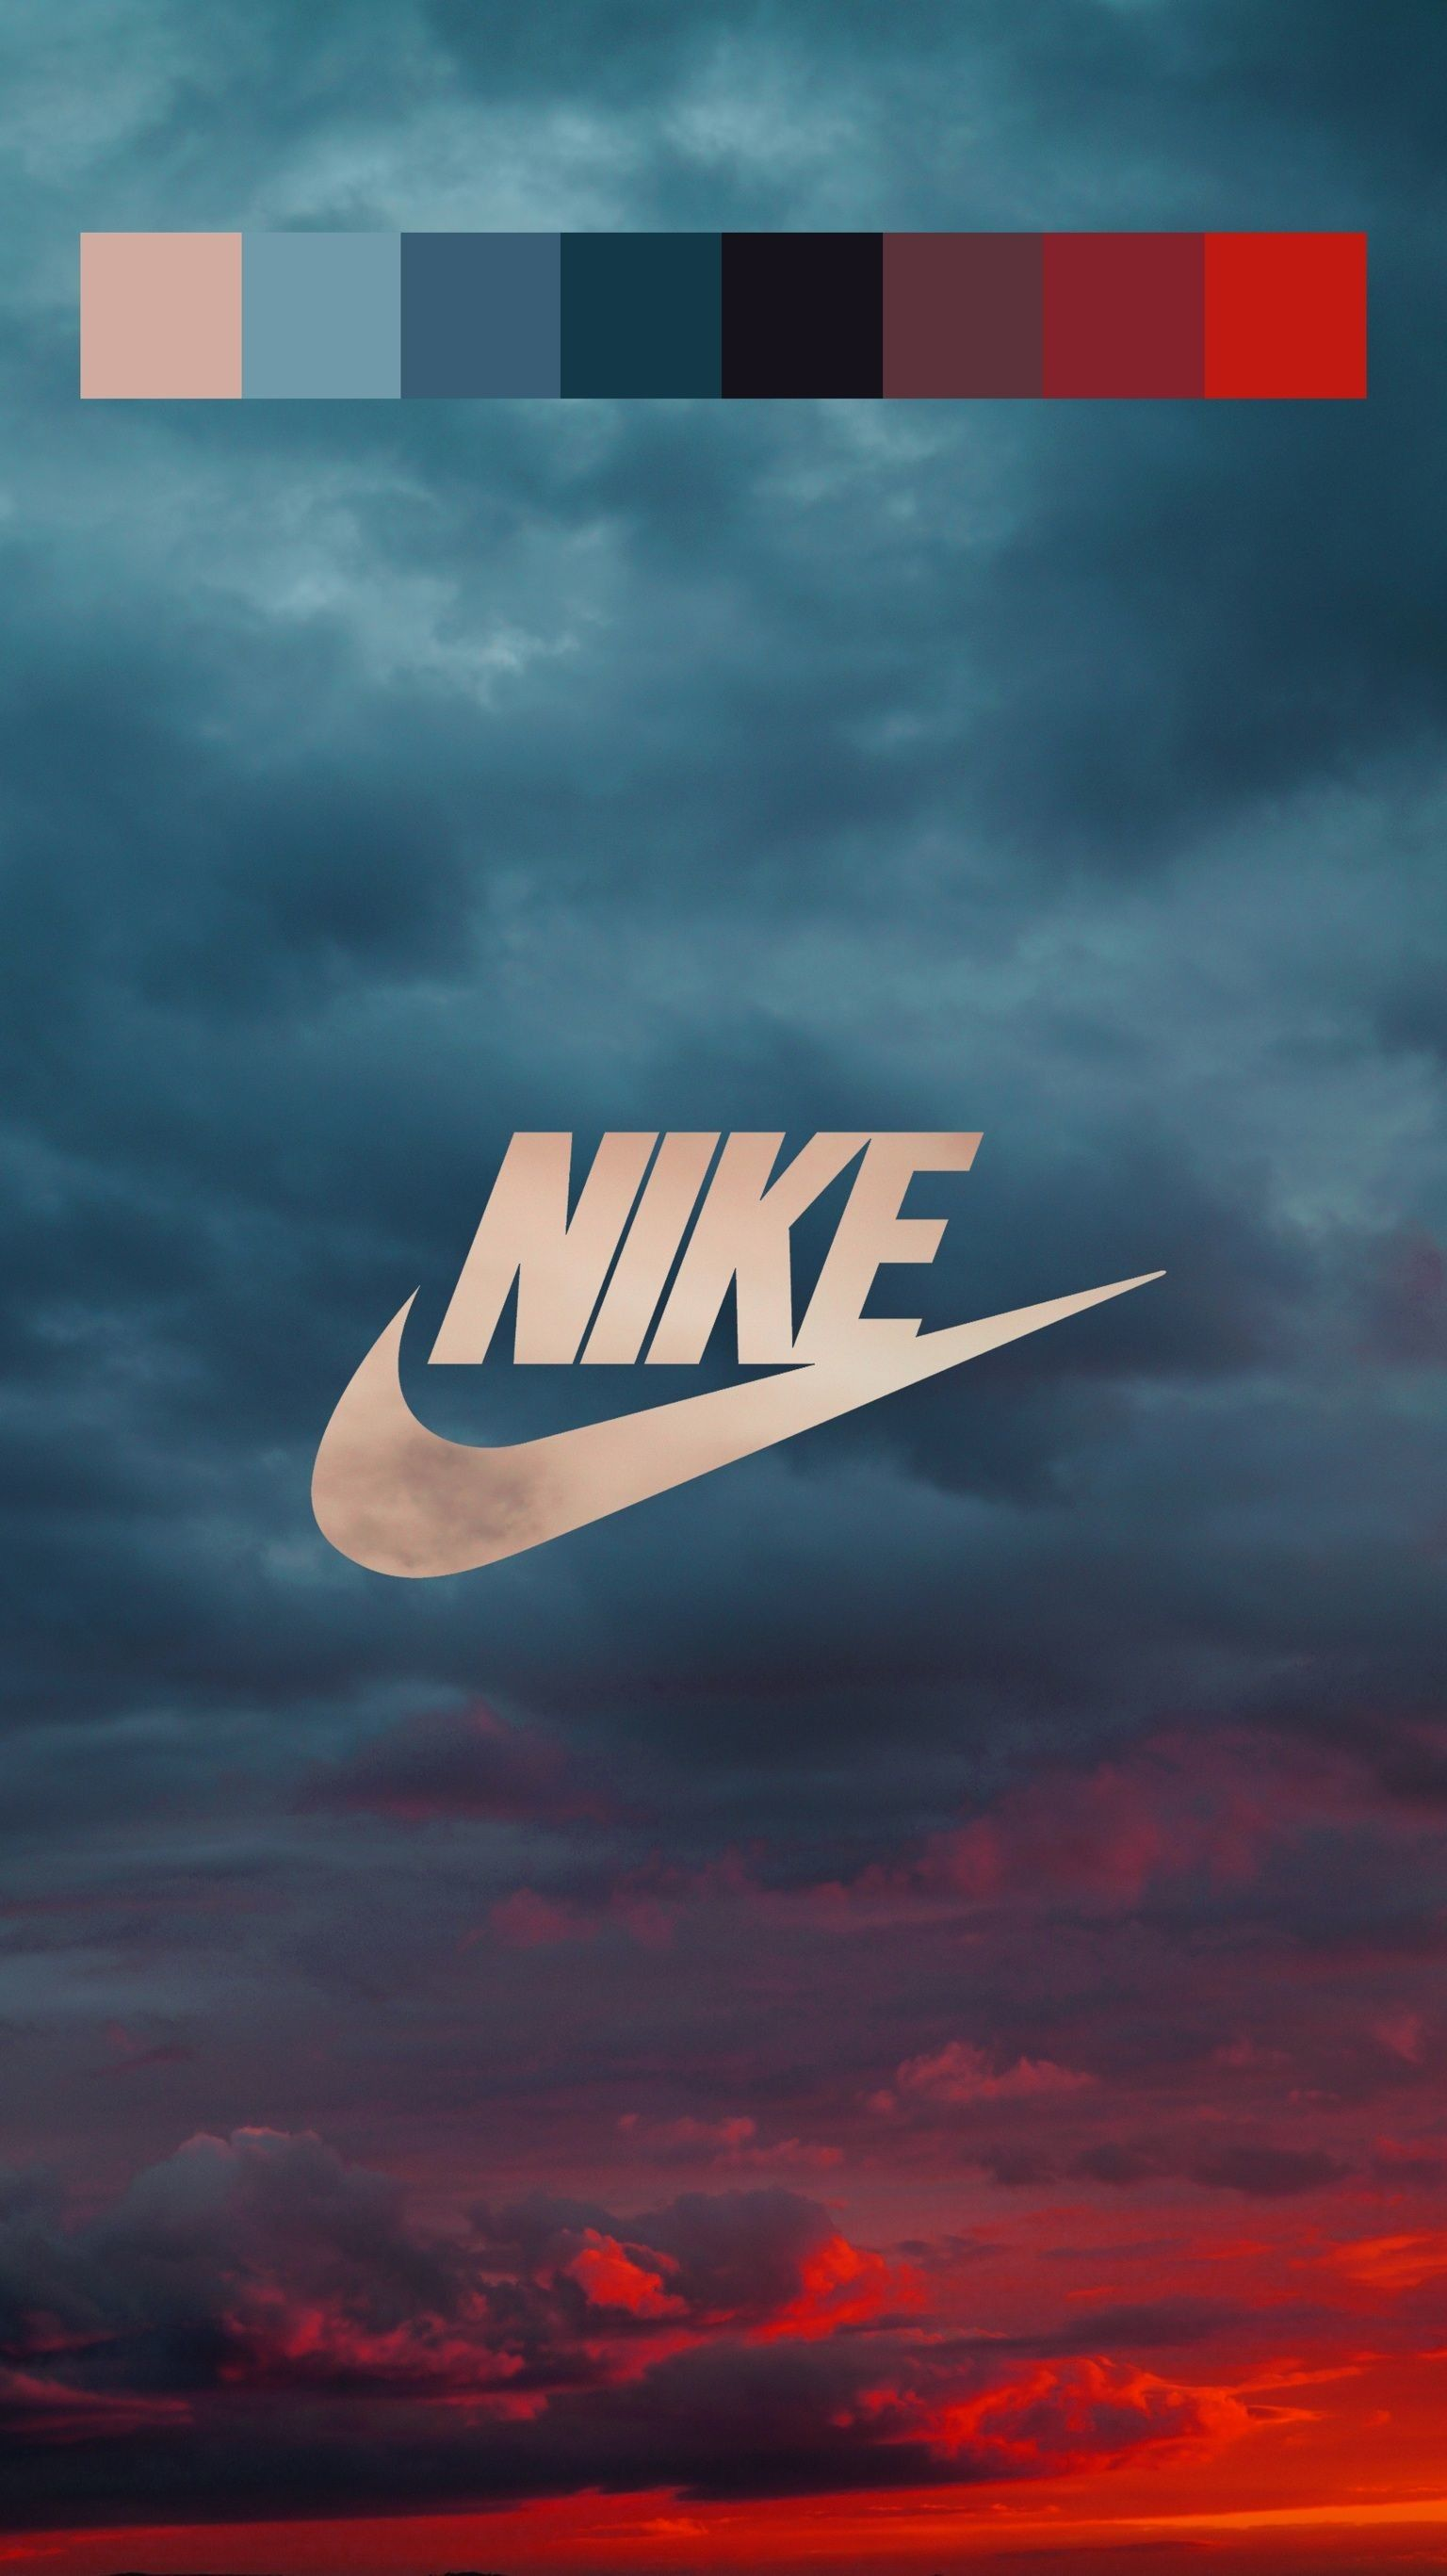 80 New Nike Wallpapers On Wallpaperplay Nike Wallpaper Adidas Iphone Wallpaper Adidas Wallpapers